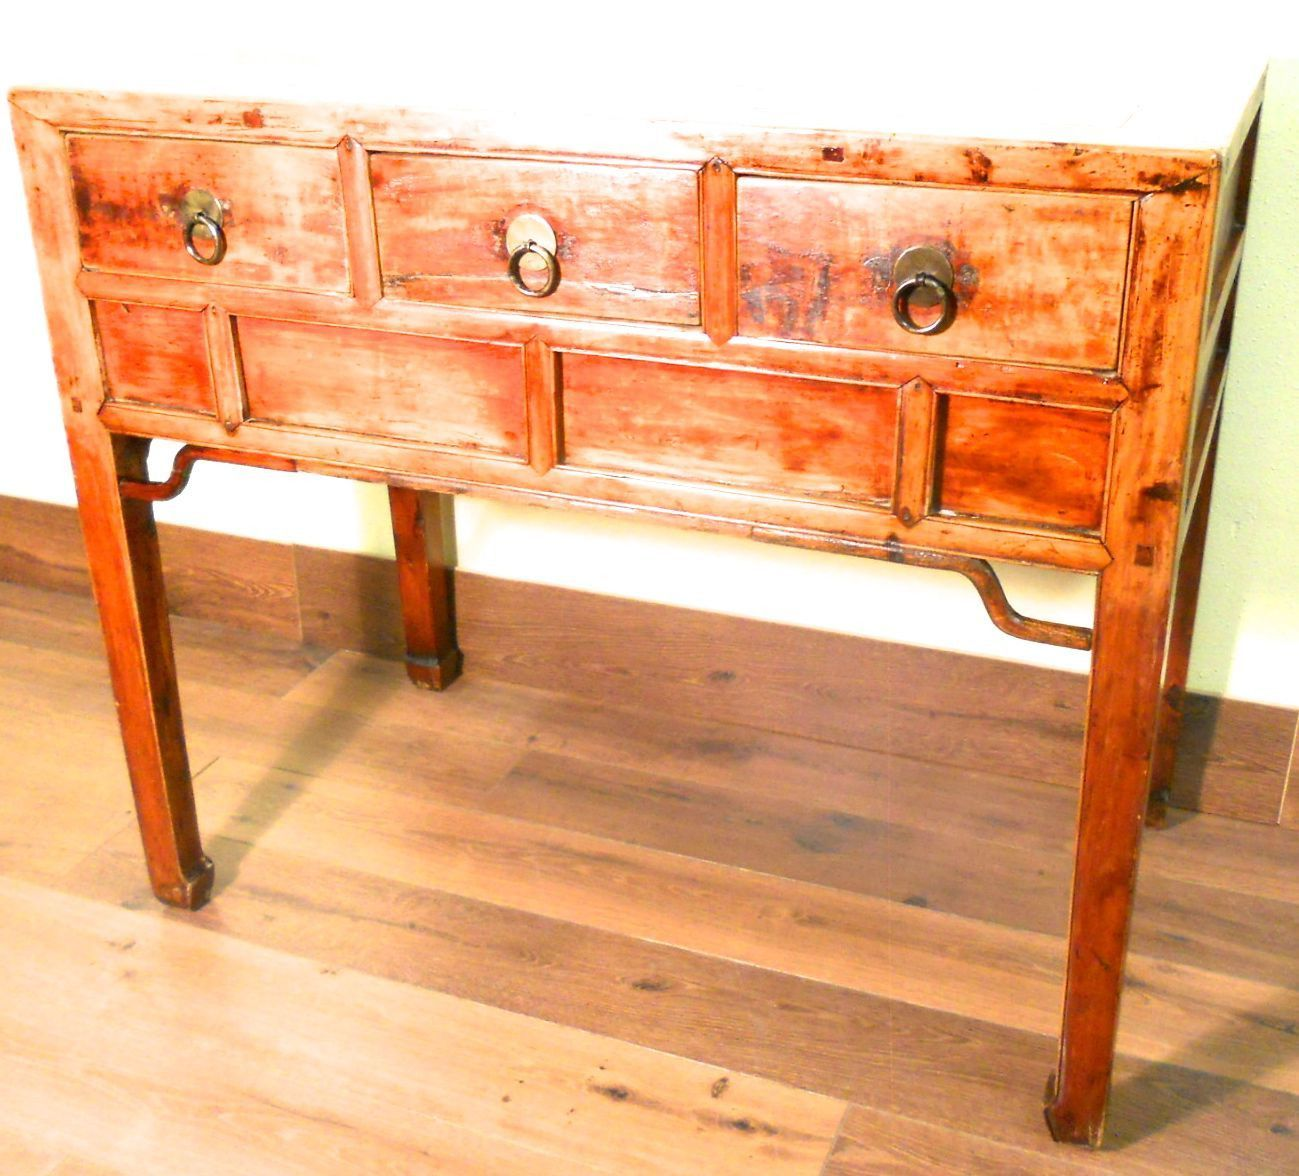 Antique chinese desk 5386 console table cypress wood circa antique chinese desk 5386 console table cypress wood circa 1800 geotapseo Gallery